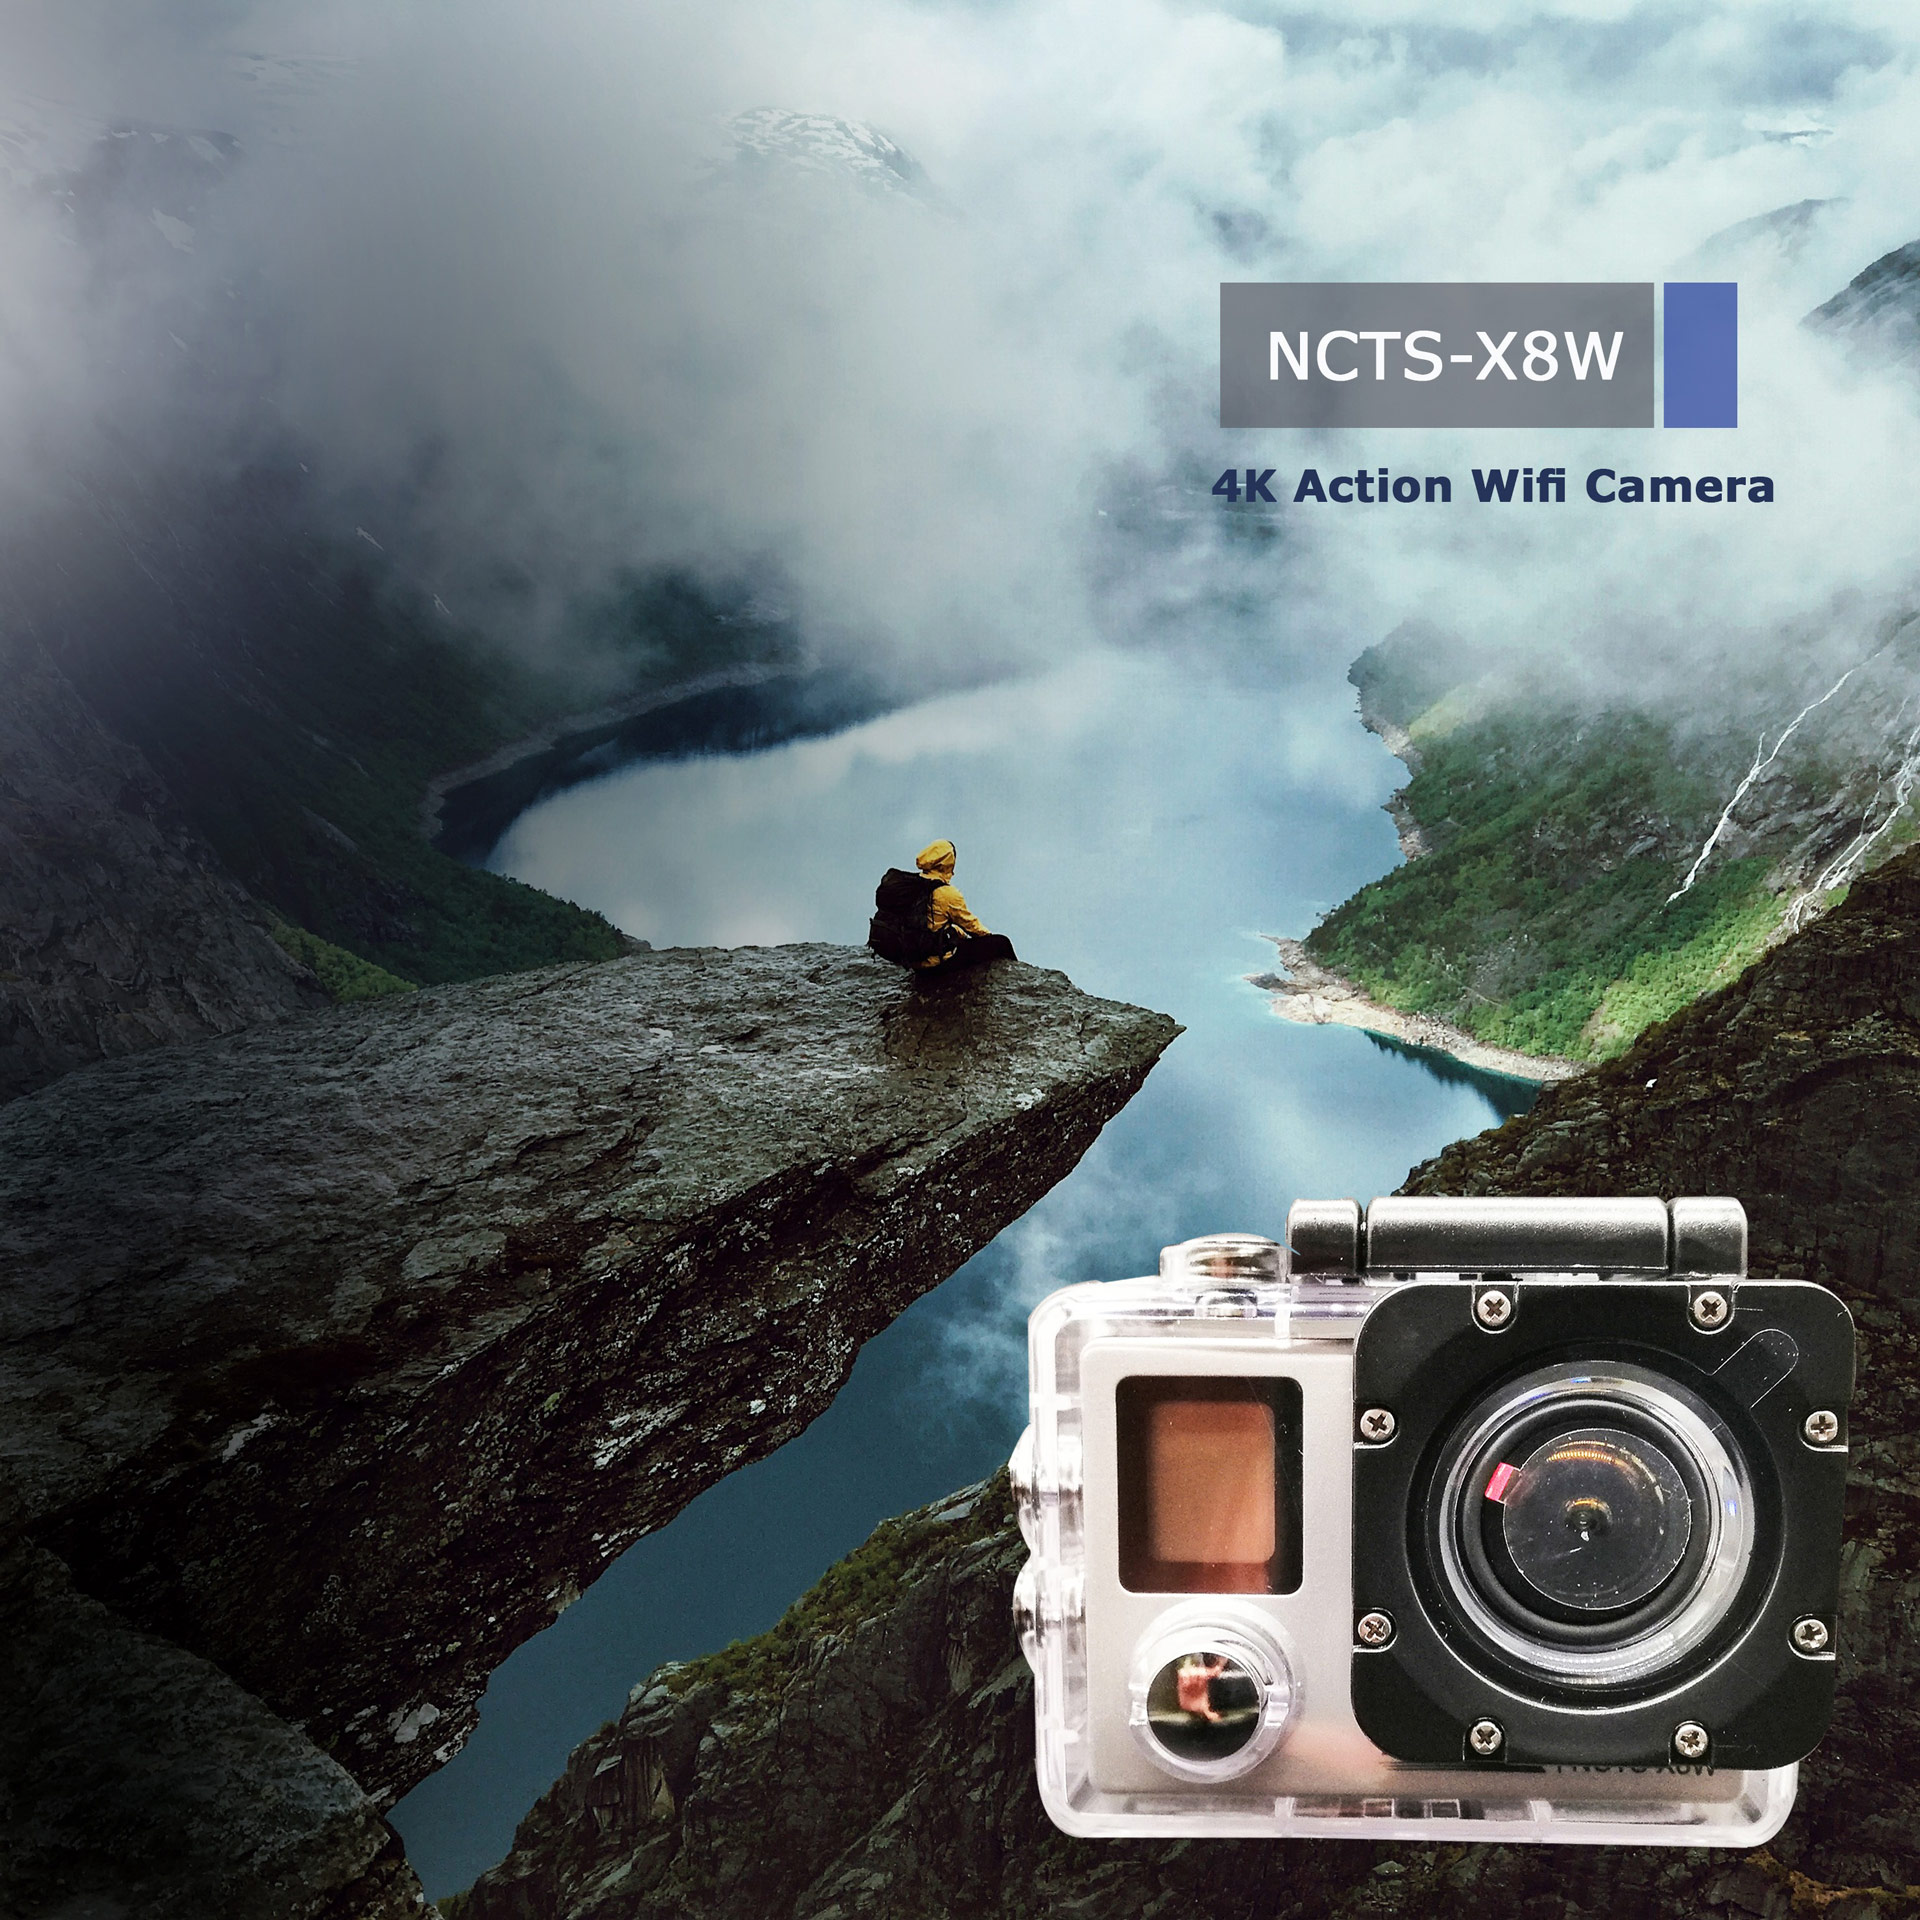 NCTS 4K SPORT CAMERA X8W